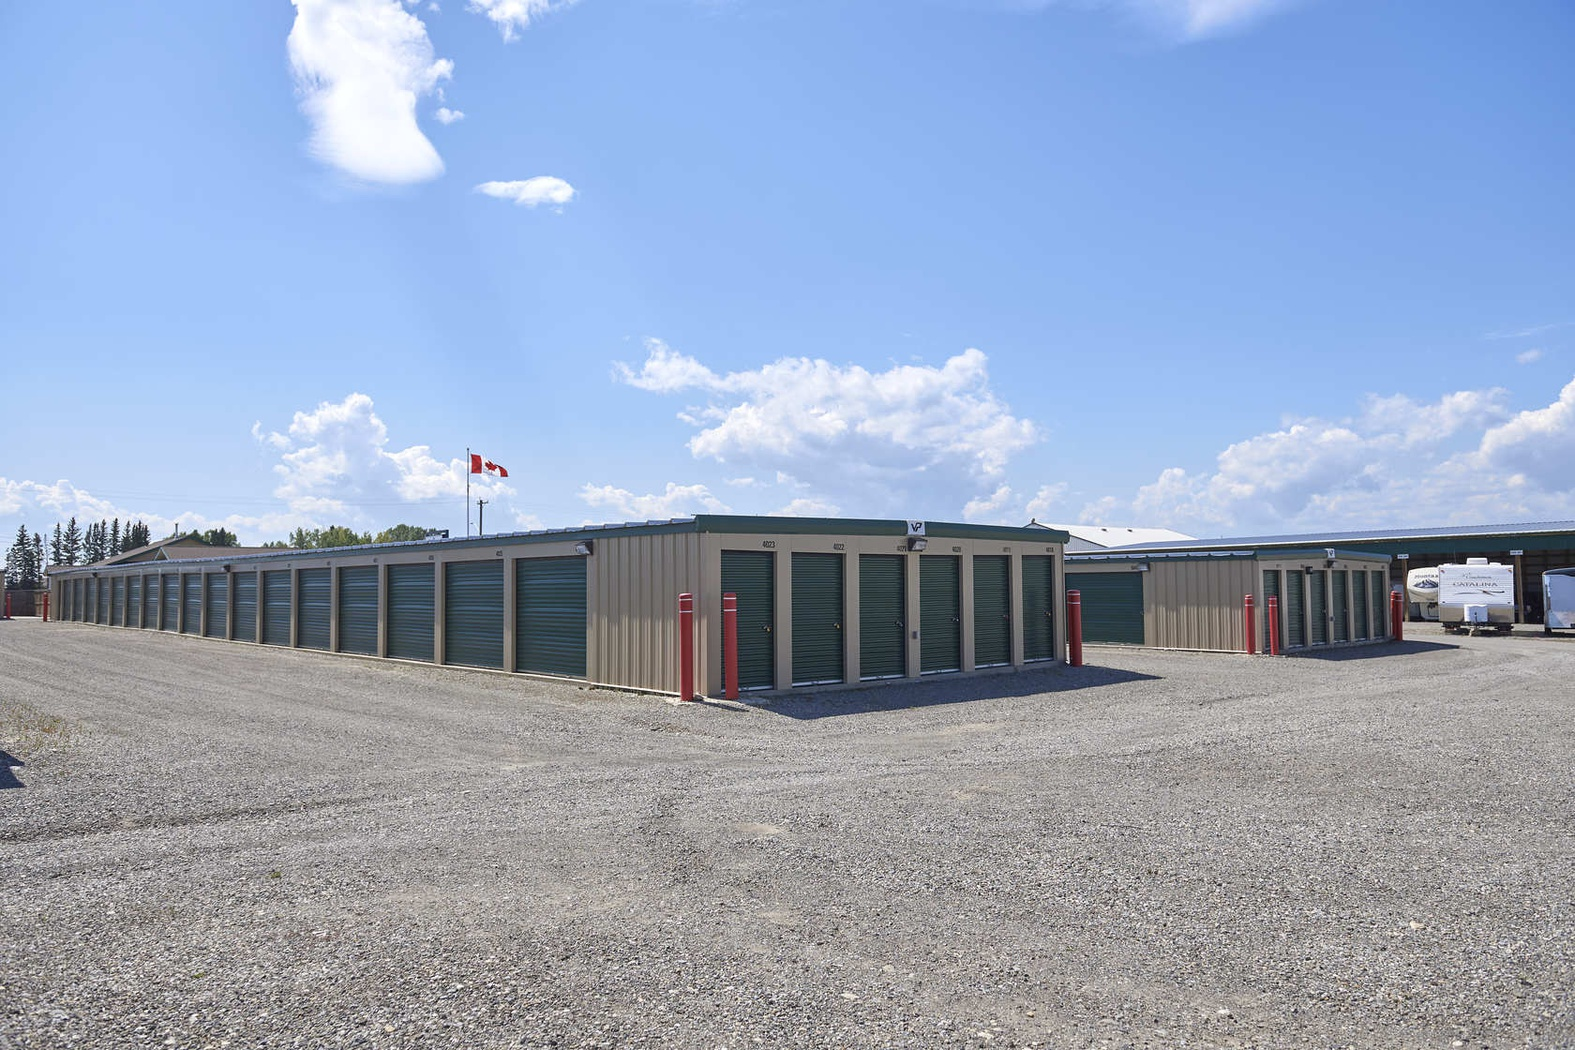 Rent Black Diamond storage units at 560 1st Ave NE. We offer a wide-range of affordable self storage units and your first 4 weeks are free!